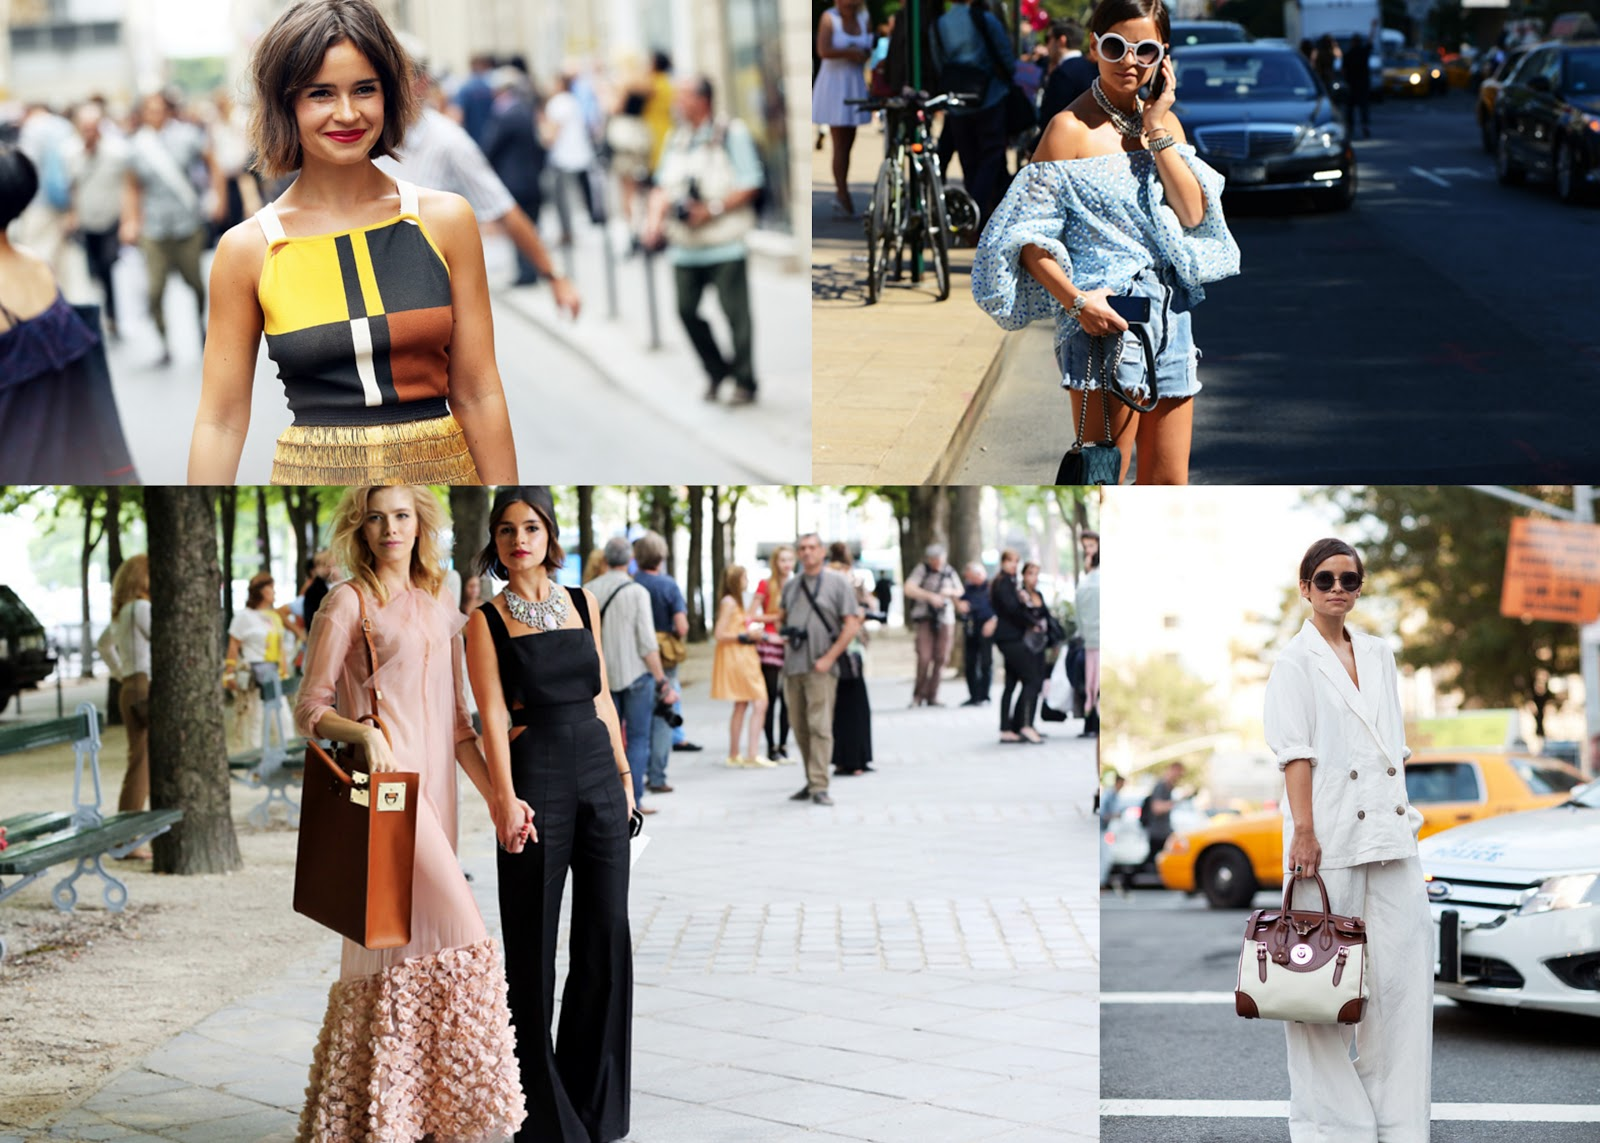 http://3.bp.blogspot.com/-VrEGjC_YYz0/UI6-w7t1QKI/AAAAAAAAGkw/xz9adh0aVPI/s1600/Miroslava+Duma+fashion+week+2012++white+tailored+suit+black+romper+and+denim+shorts.jpg